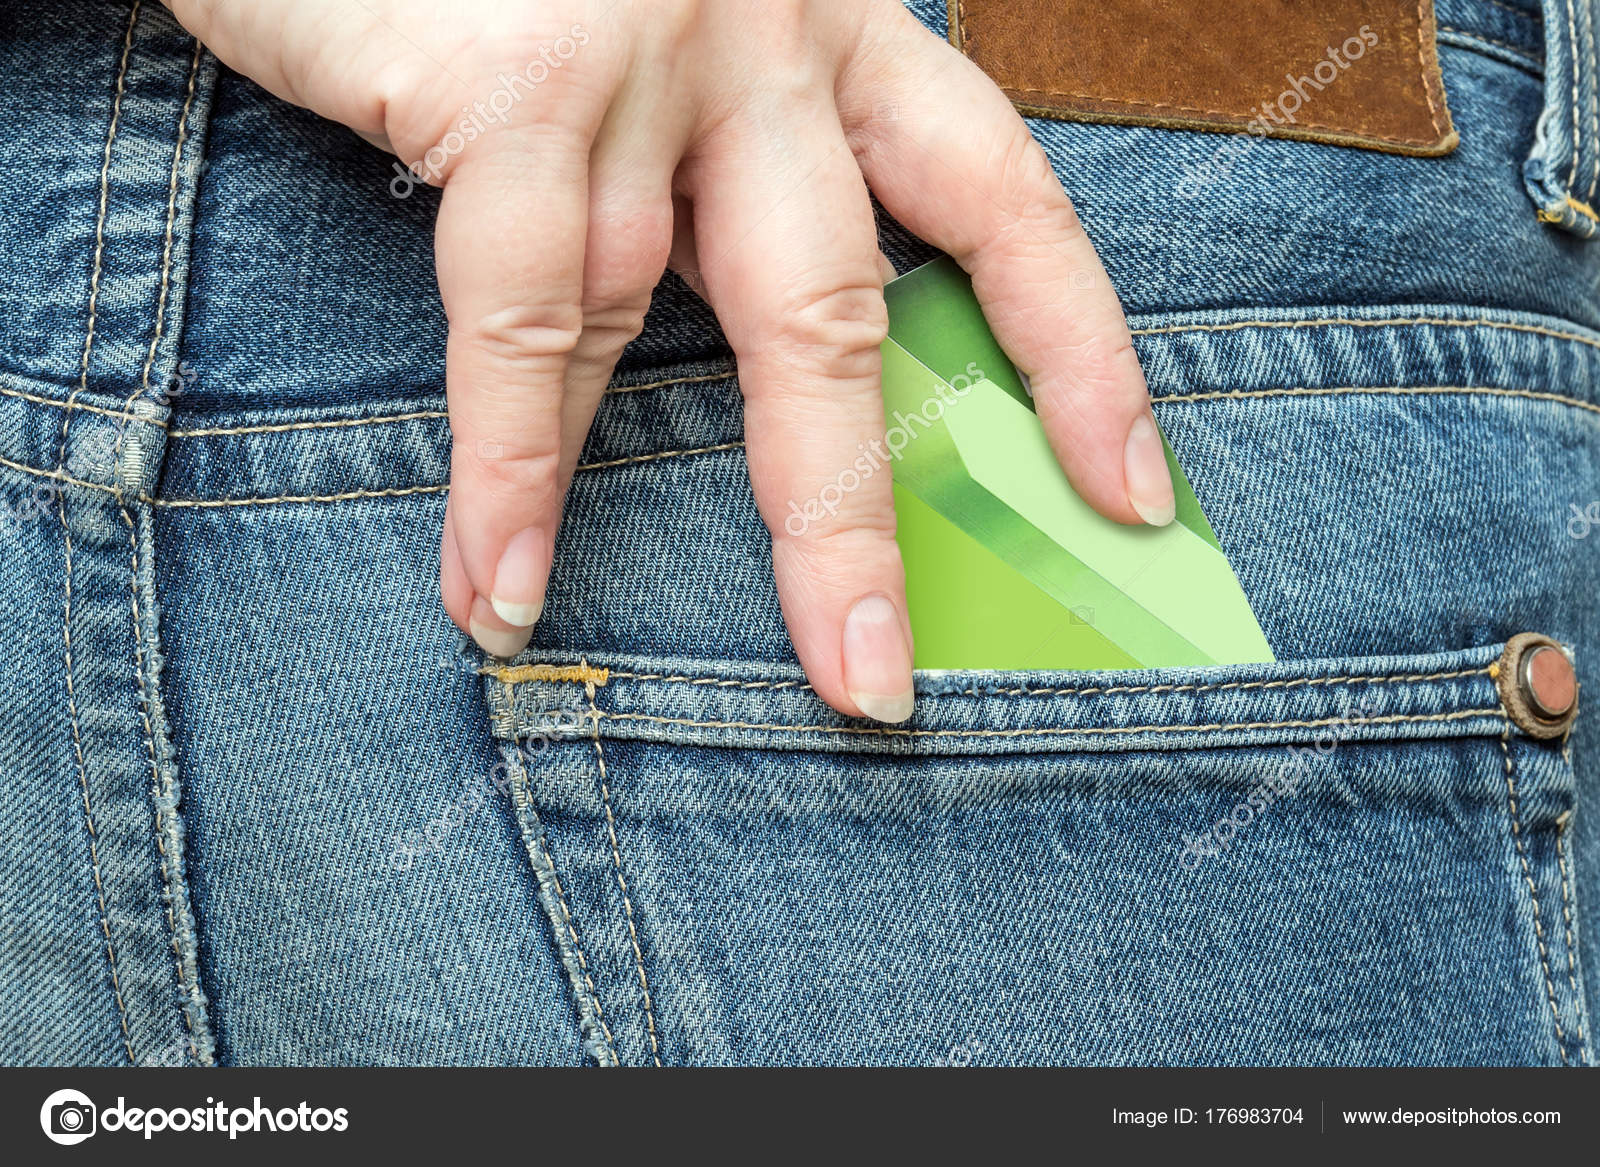 417708995 The hand pulls out a bank card from the pocket of the jeans ...